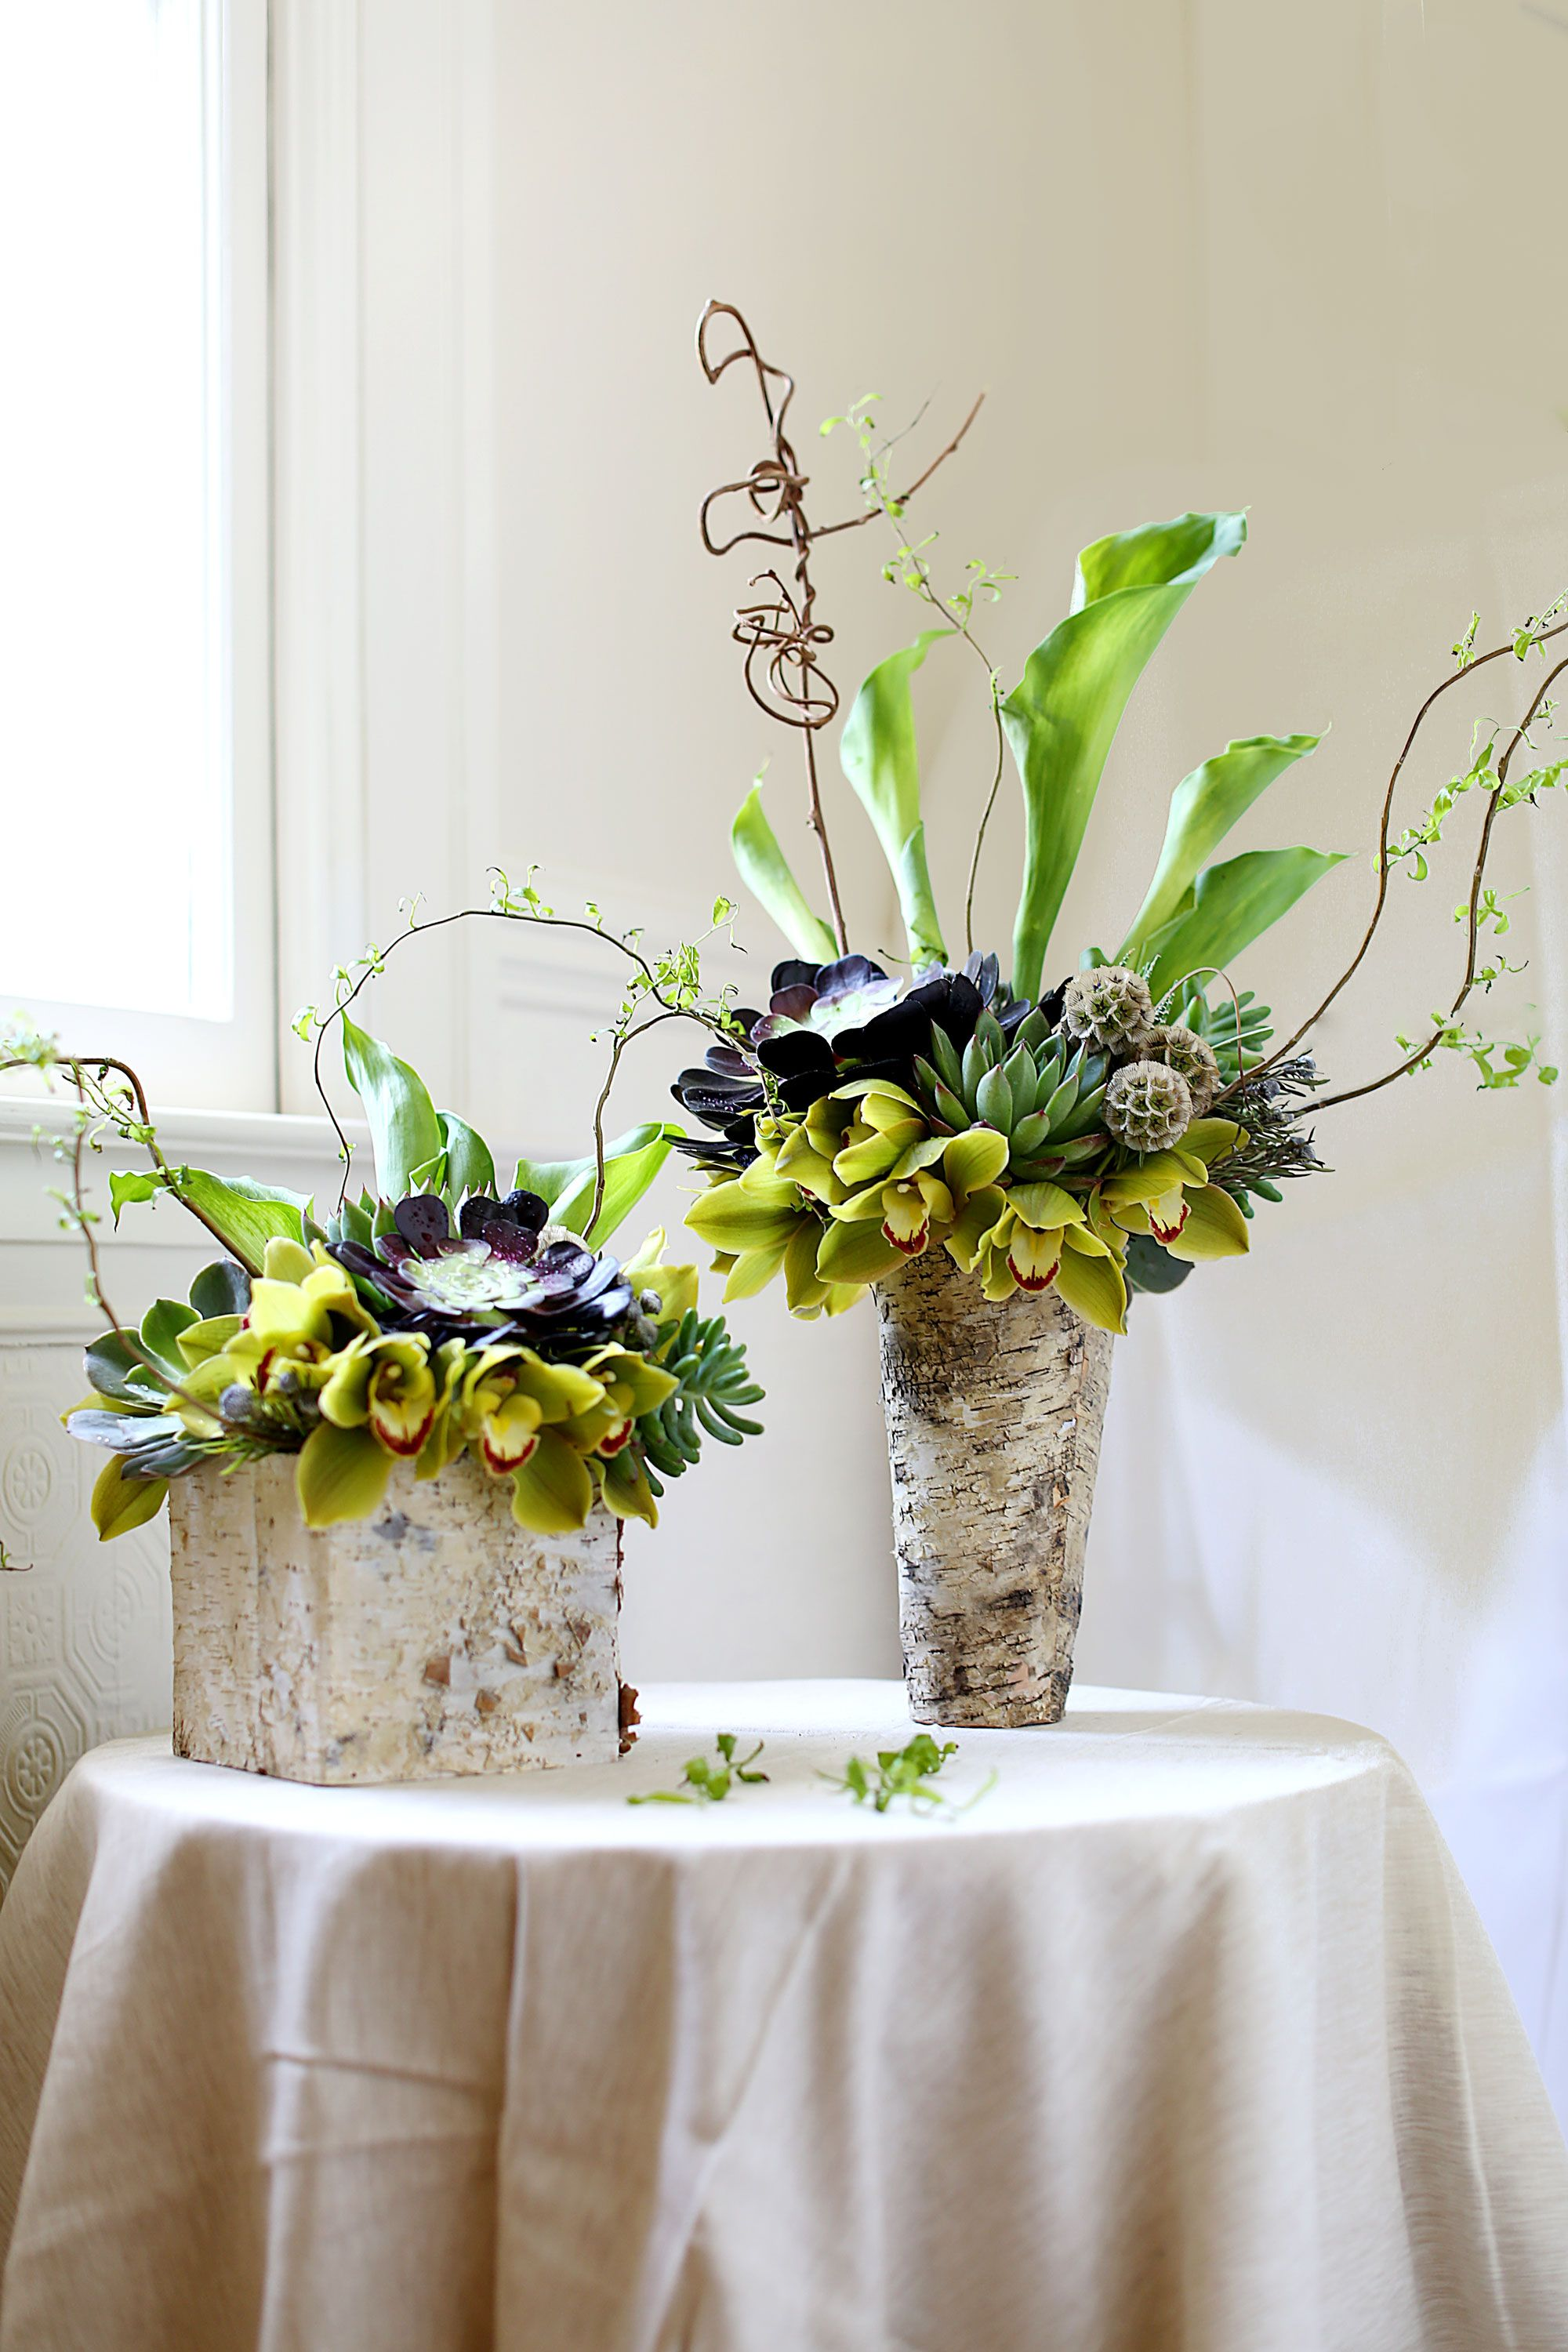 Aeonium Succulents Arrangements With Cymbidium Curly Willow Tip Calla Lilly Leucodendron Scabiosa Pod Cymbidium Orchids Colorful Wedding Flowers Orchids